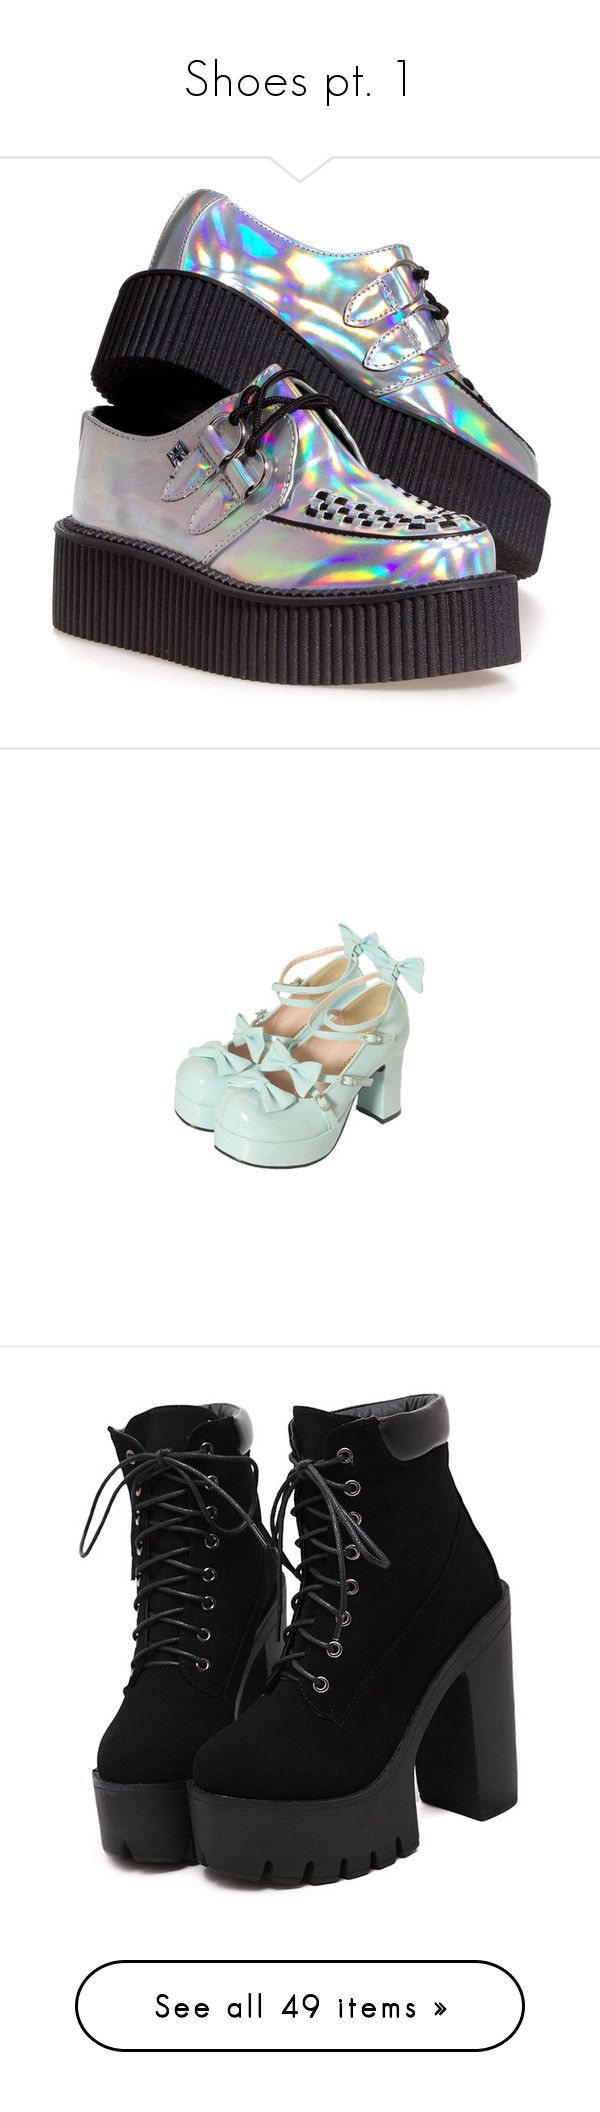 """""""Shoes pt. 1"""" by ariagrimesqoutev ❤ liked on Polyvore featuring shoes, creepers, sneakers, t.u.k. flats, flat shoes, oxford flats, flat pump shoes, creeper shoes, converse and blue"""